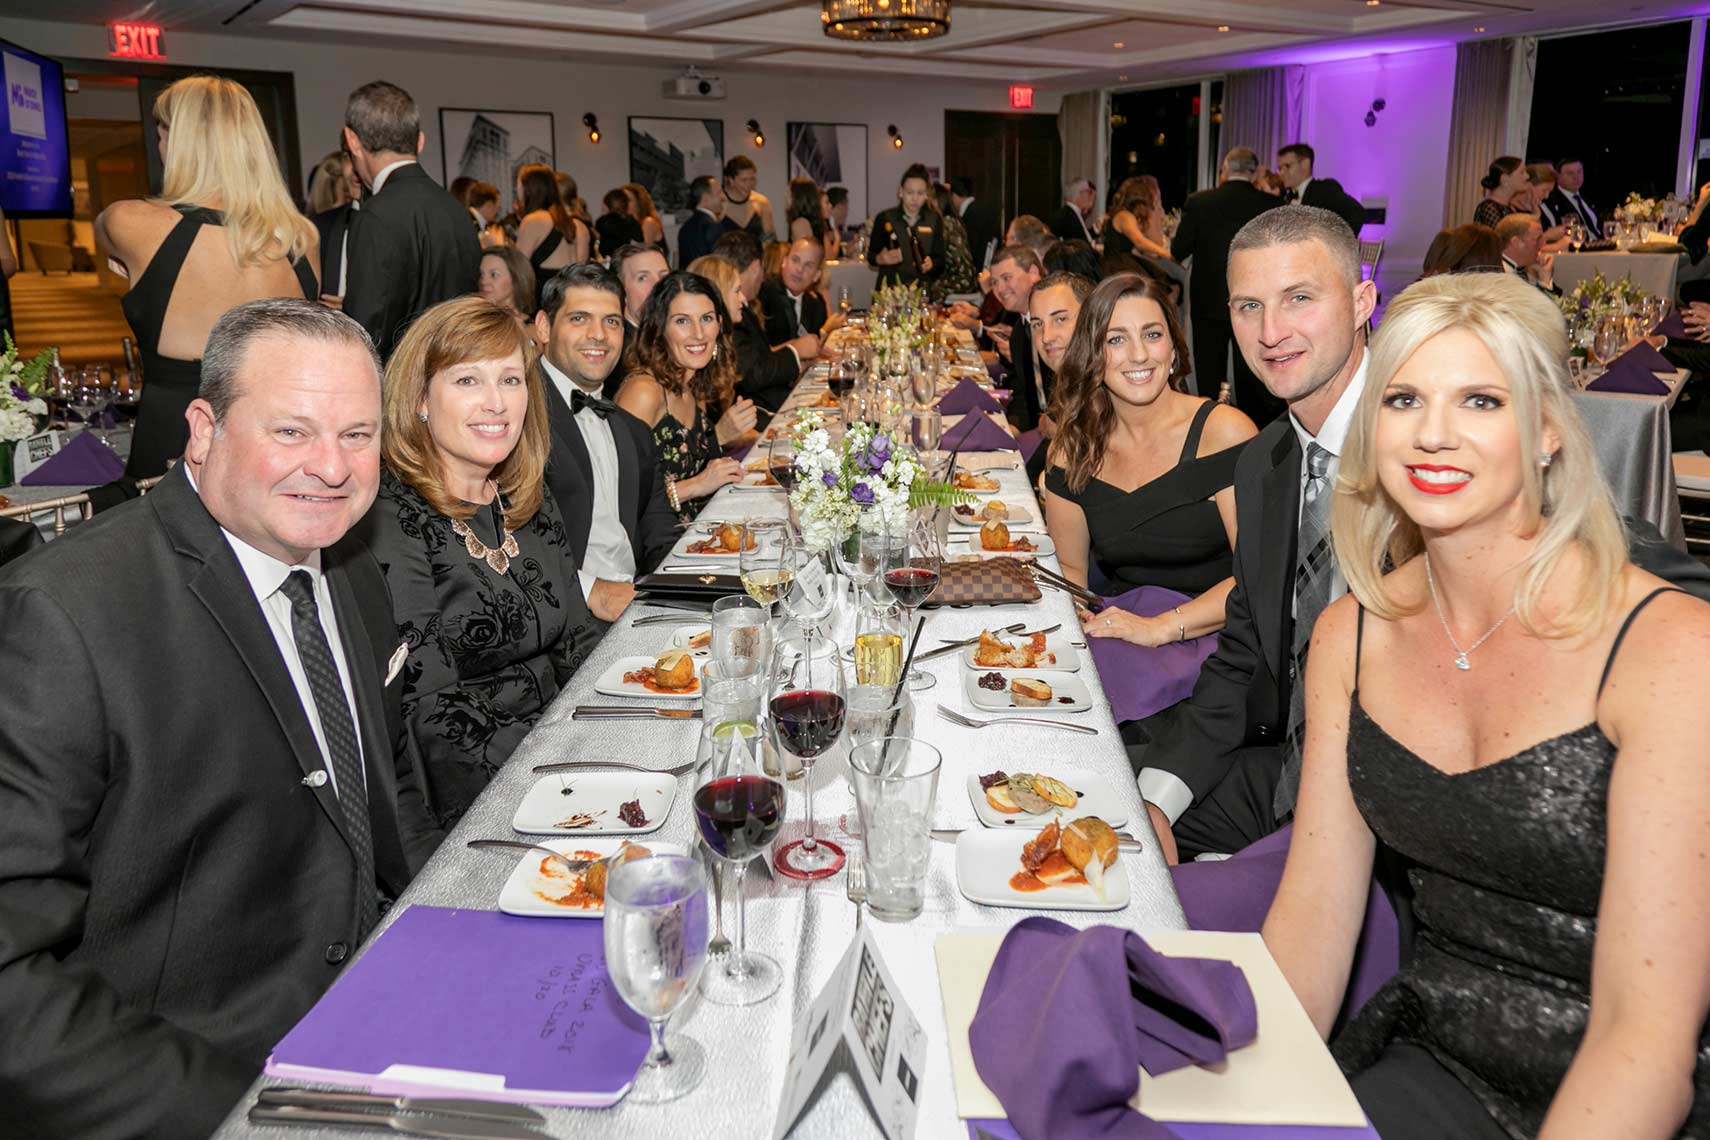 020-Group table shot of event attendees at the March of Dimes Black Ties for Babies gala